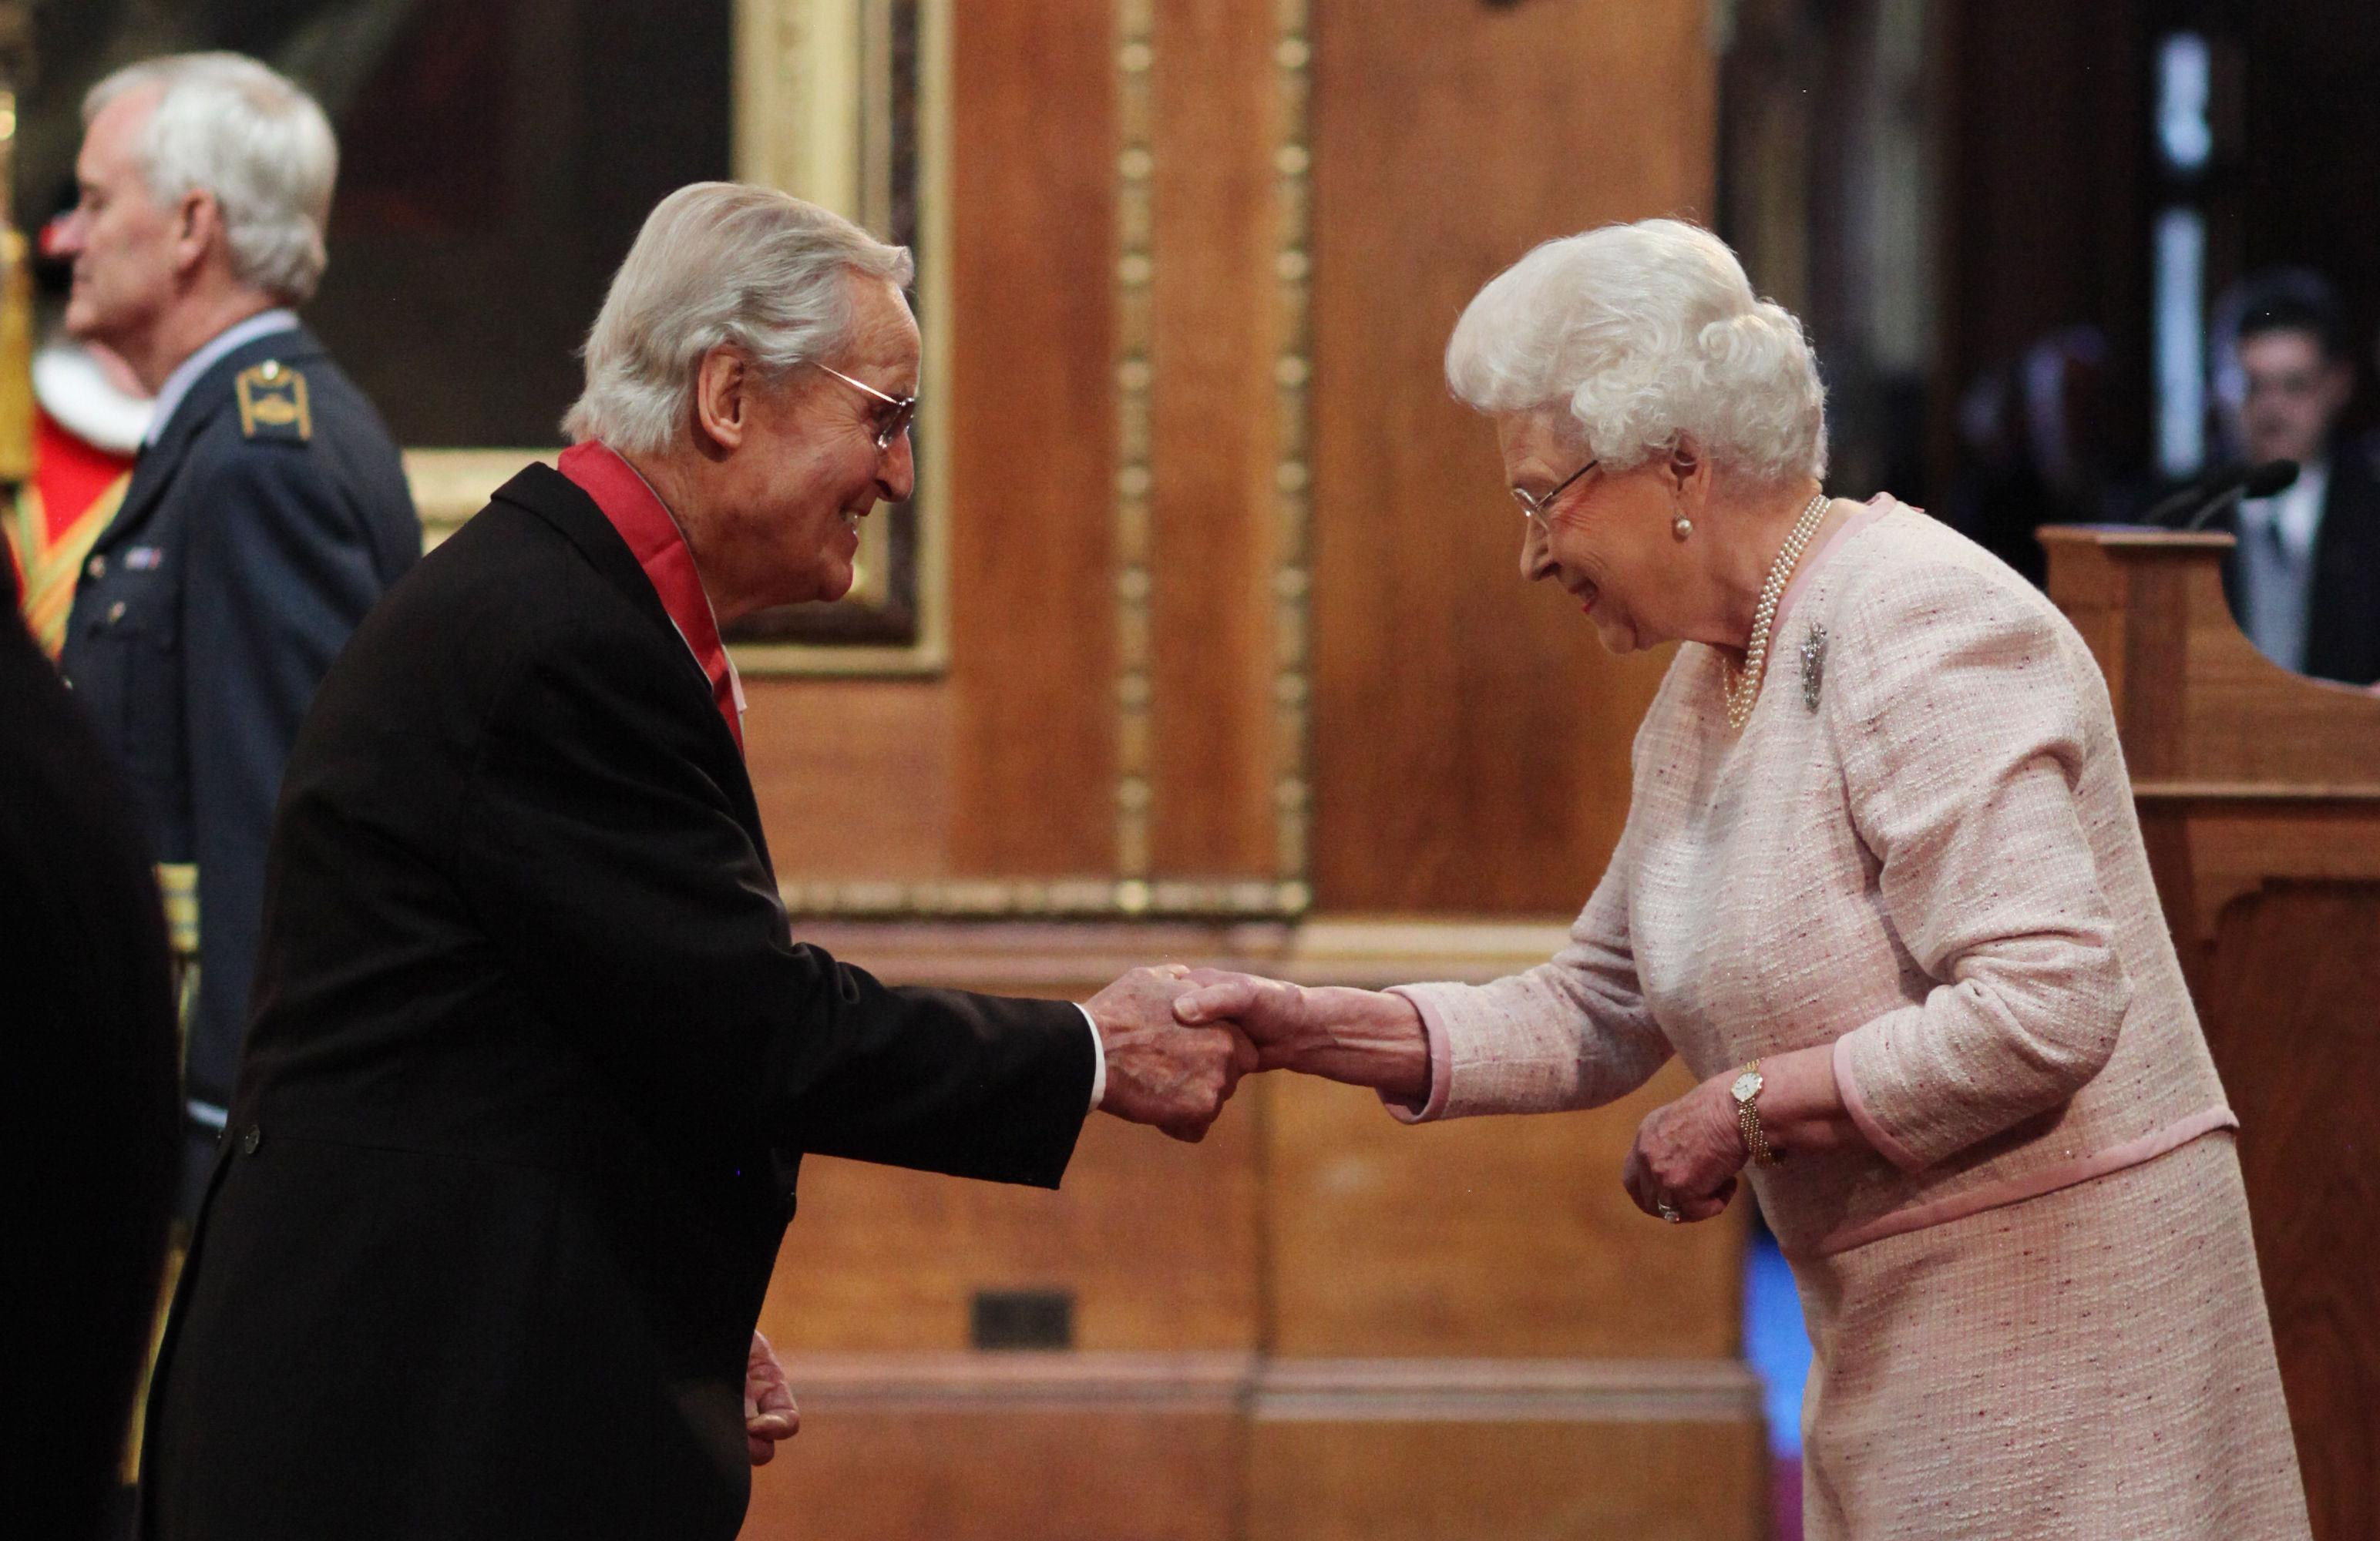 Entertainer Nicholas Parsons is made a Commander of the Order of the British Empire (CBE) by Queen Elizabeth II during an Investiture ceremony at Windsor Castle, Berkshire.